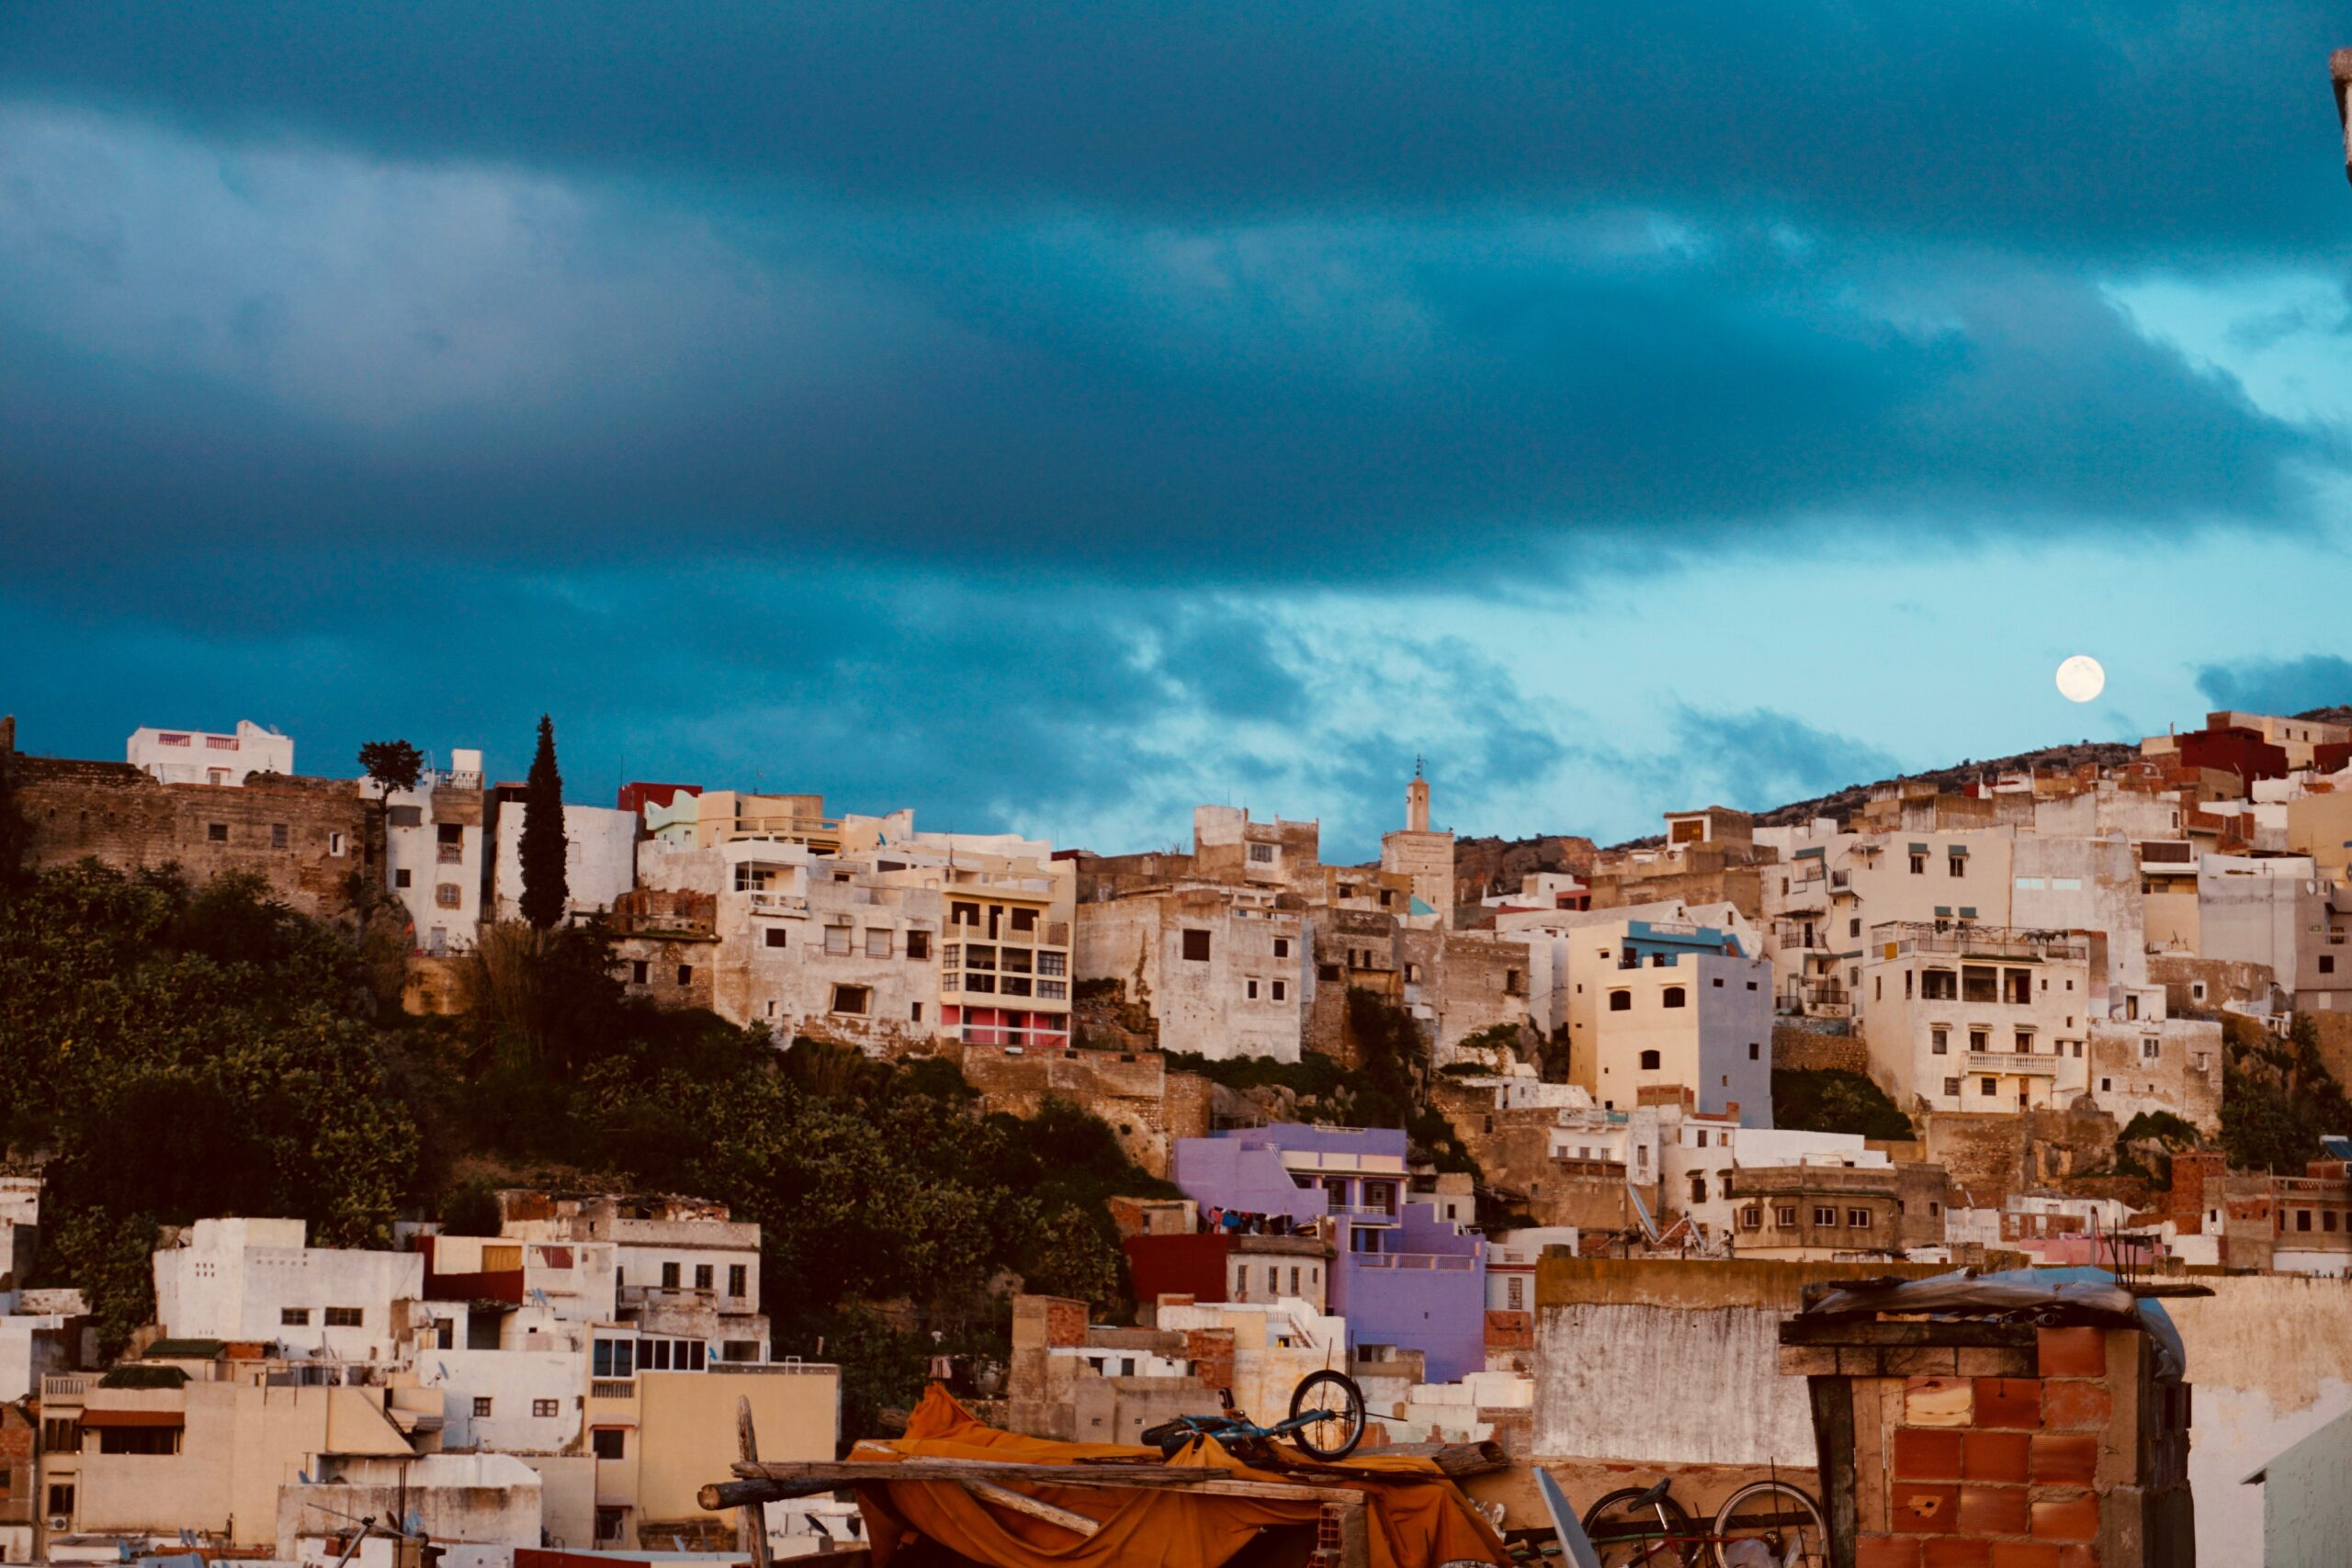 Financial Incentives for Disaster Risk Reduction in Morocco